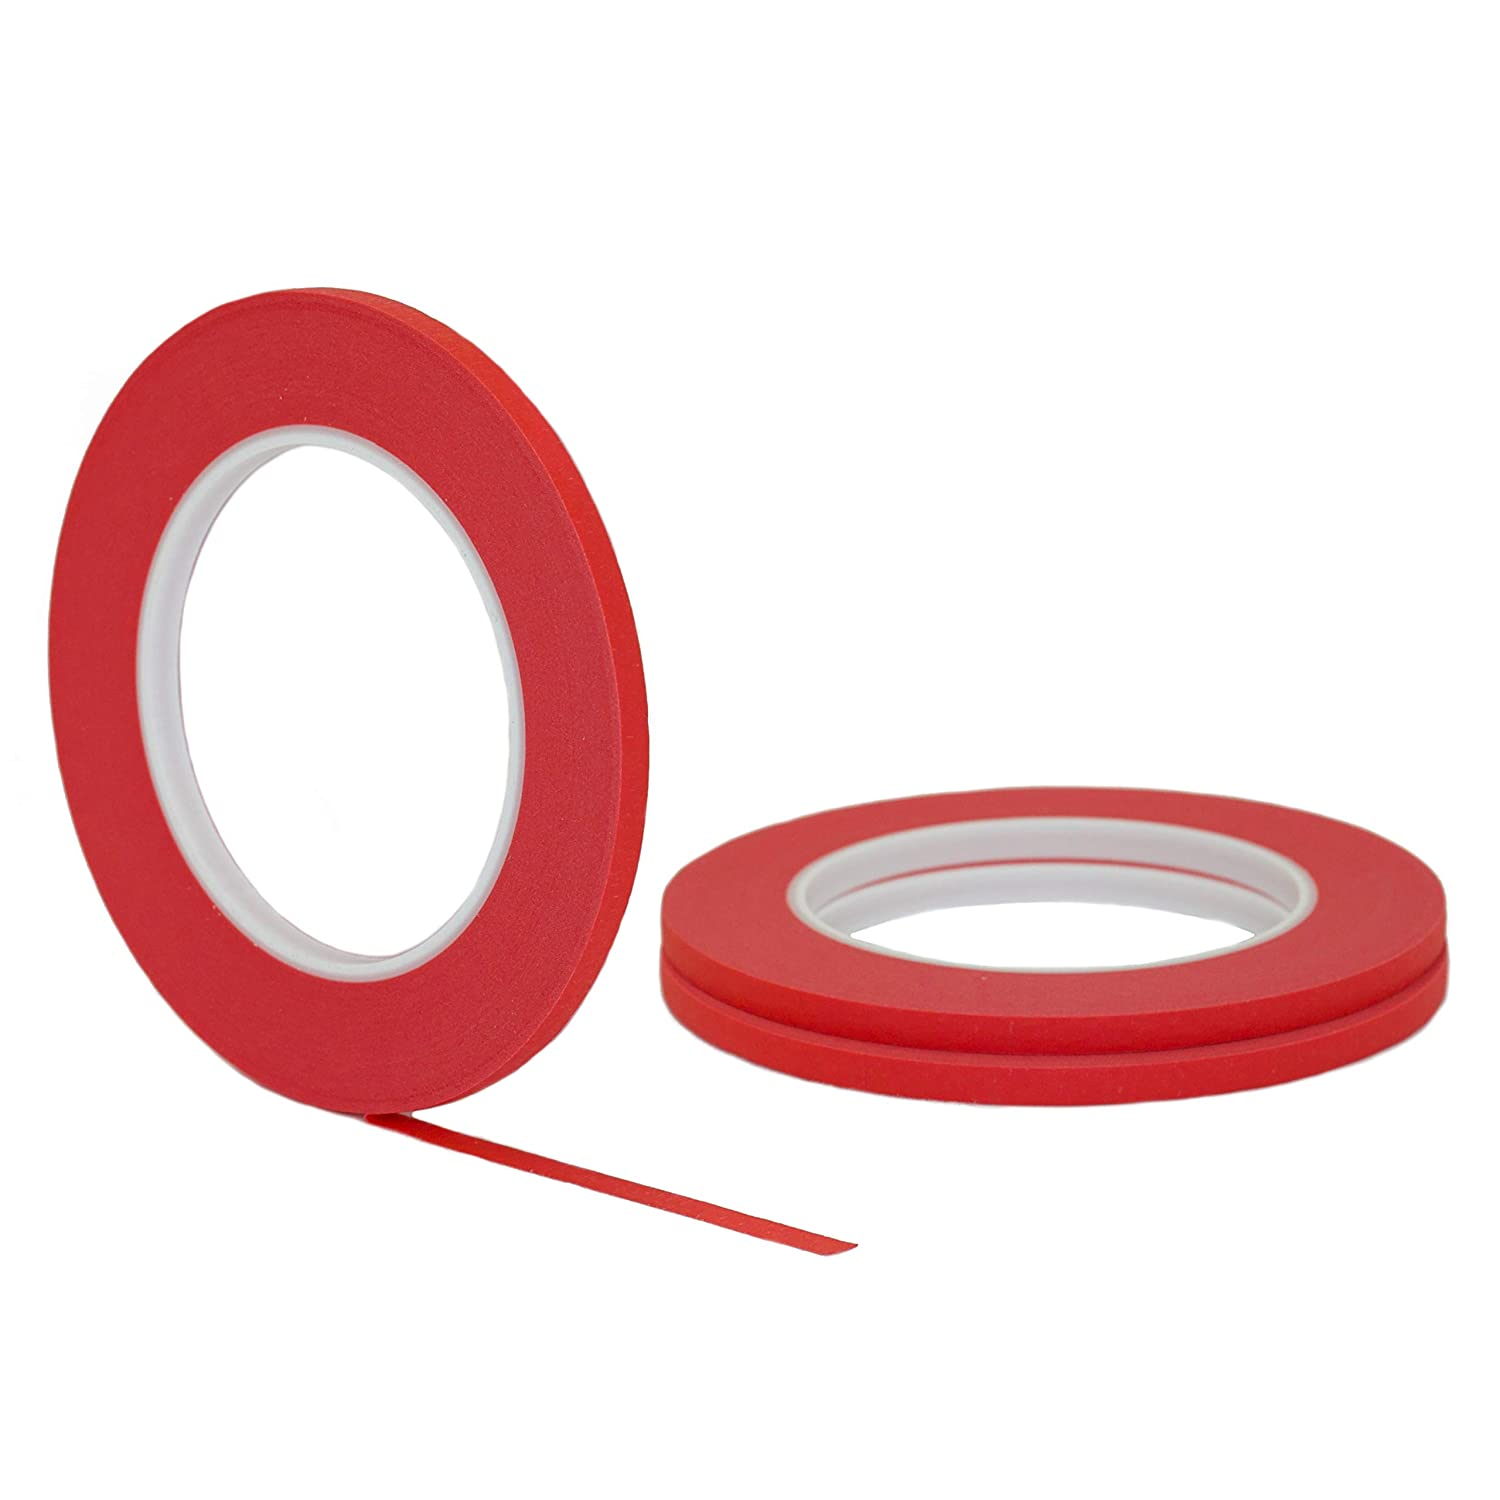 .25 in 6MM 3 pk 1//4 inch x 60yd STIKK Red Painters Tape 14 Day Clean Release Trim Edge Thin Narrow Finishing Masking Tape